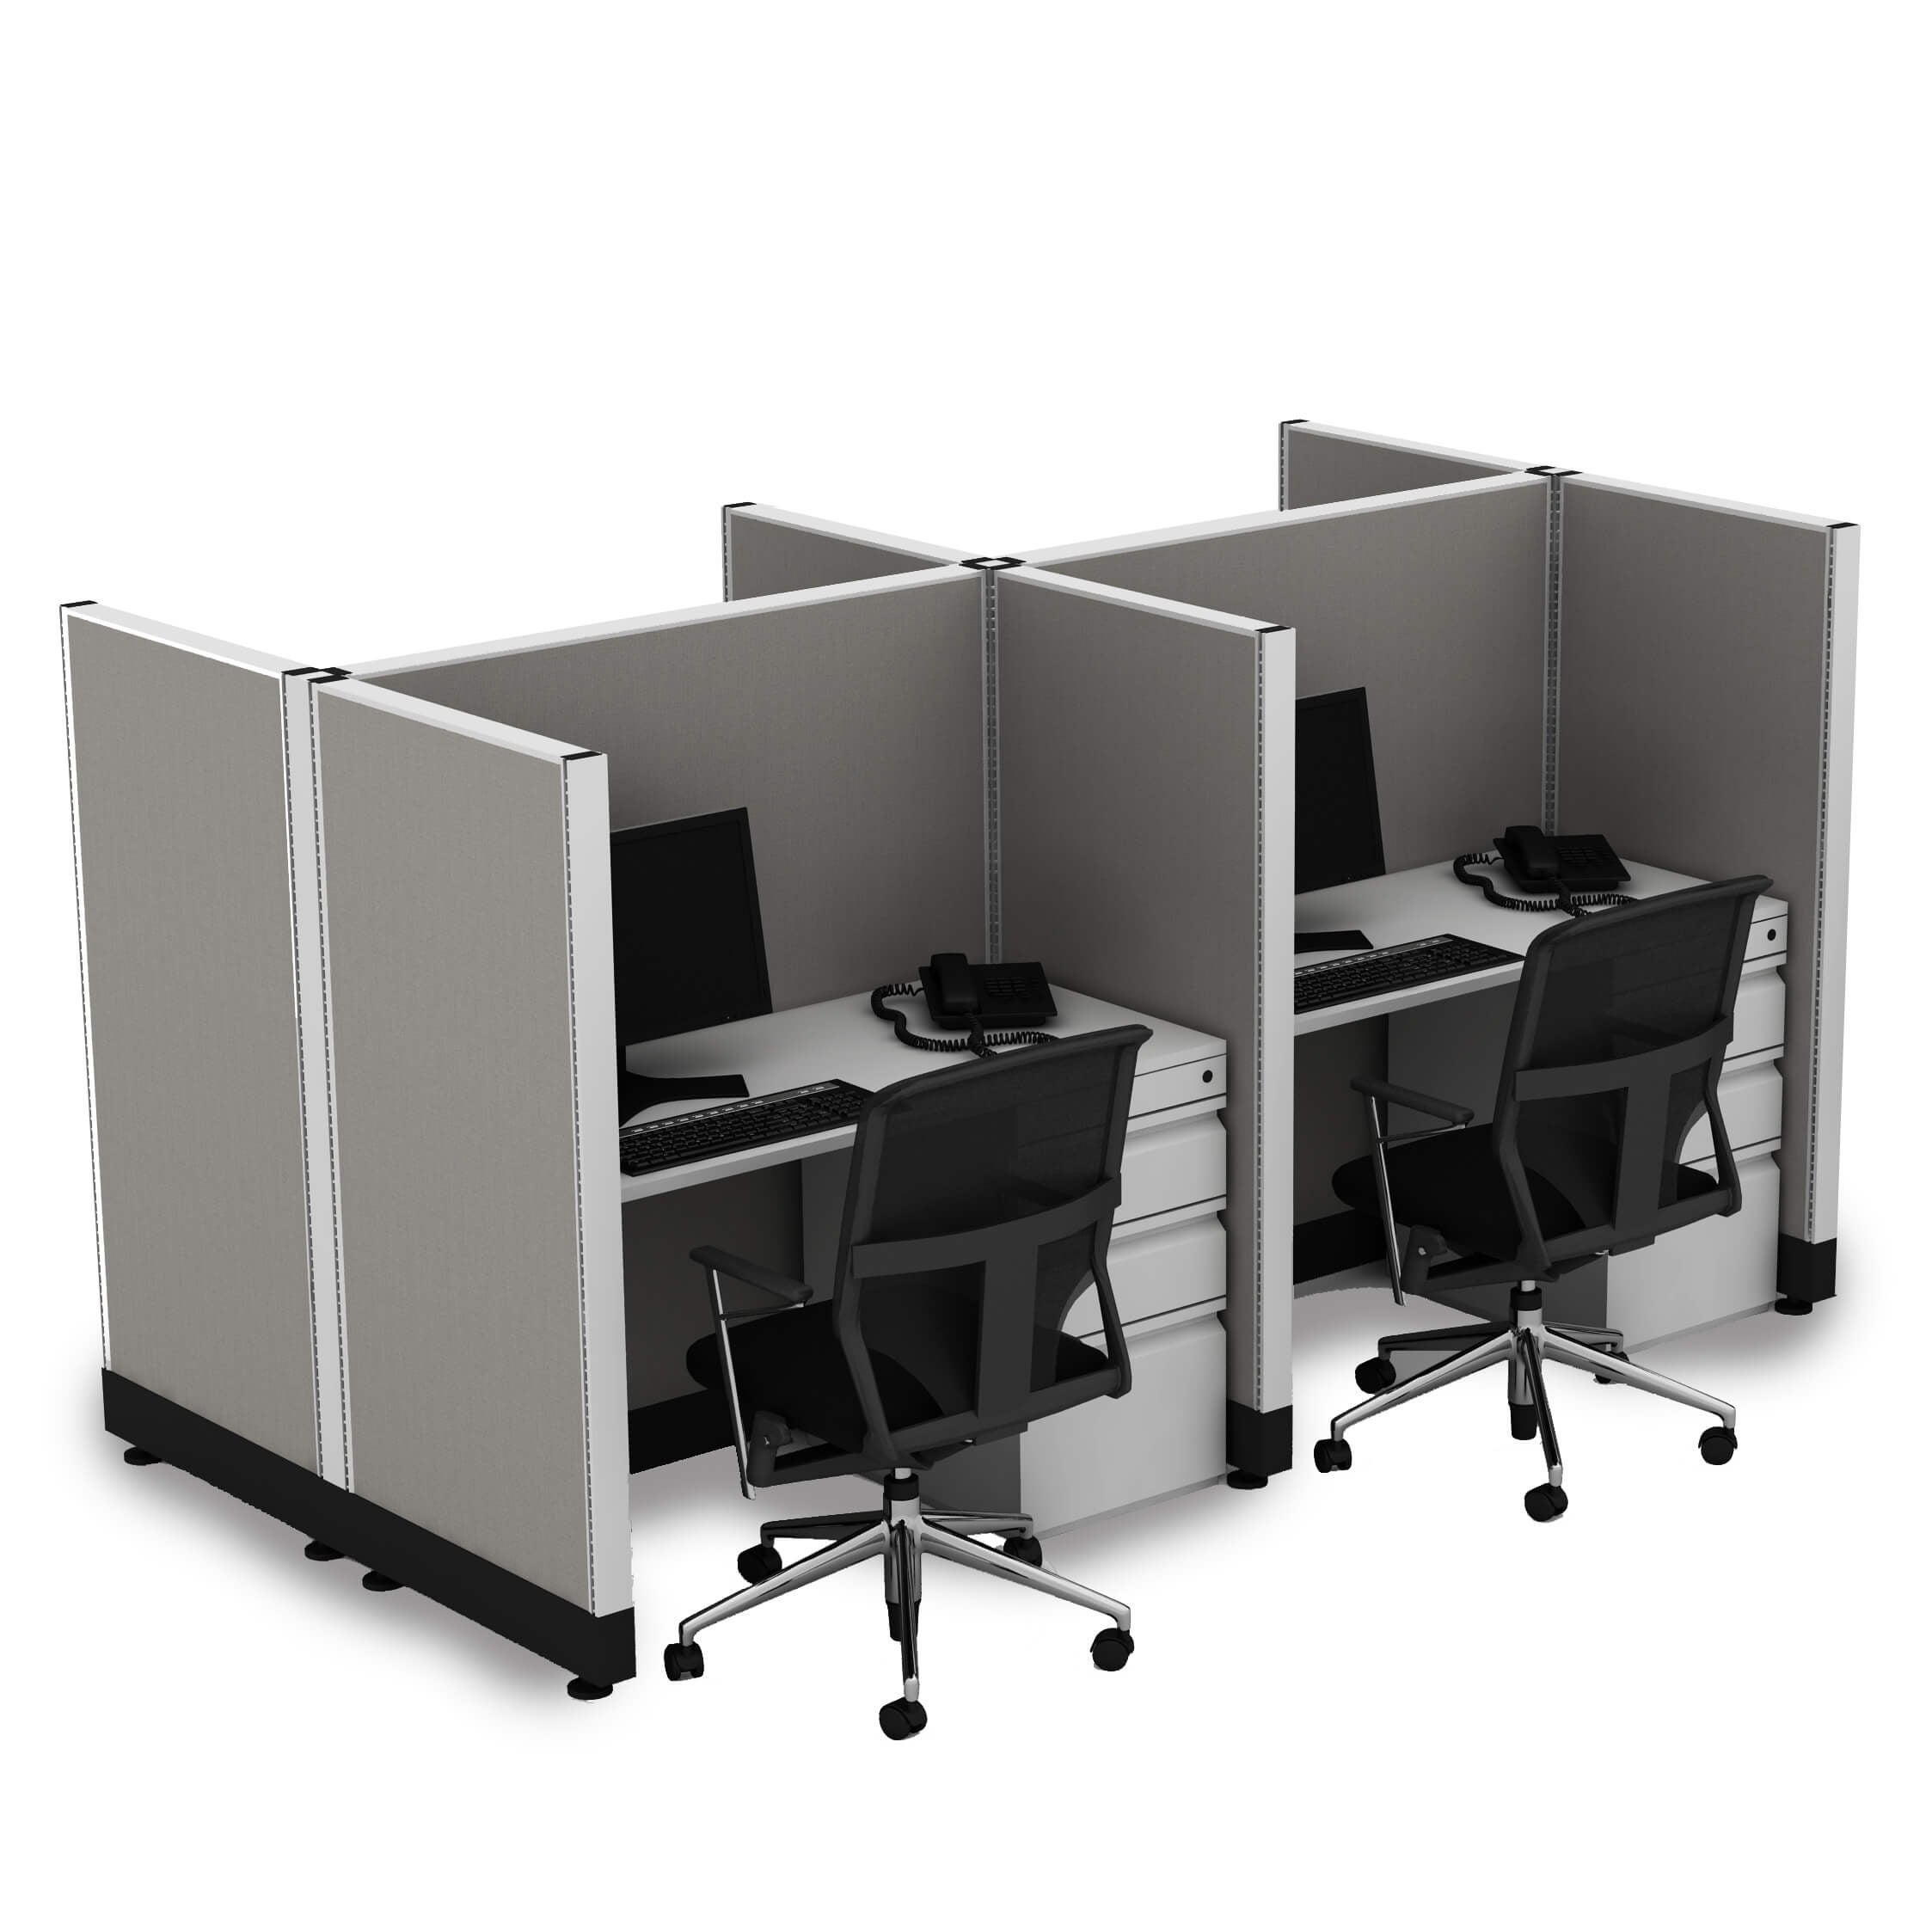 Office Cubicle Desk 53H 4pack Cluster Unpowered (2x4 - Espresso Desk Silver Paint - Assembly Required)